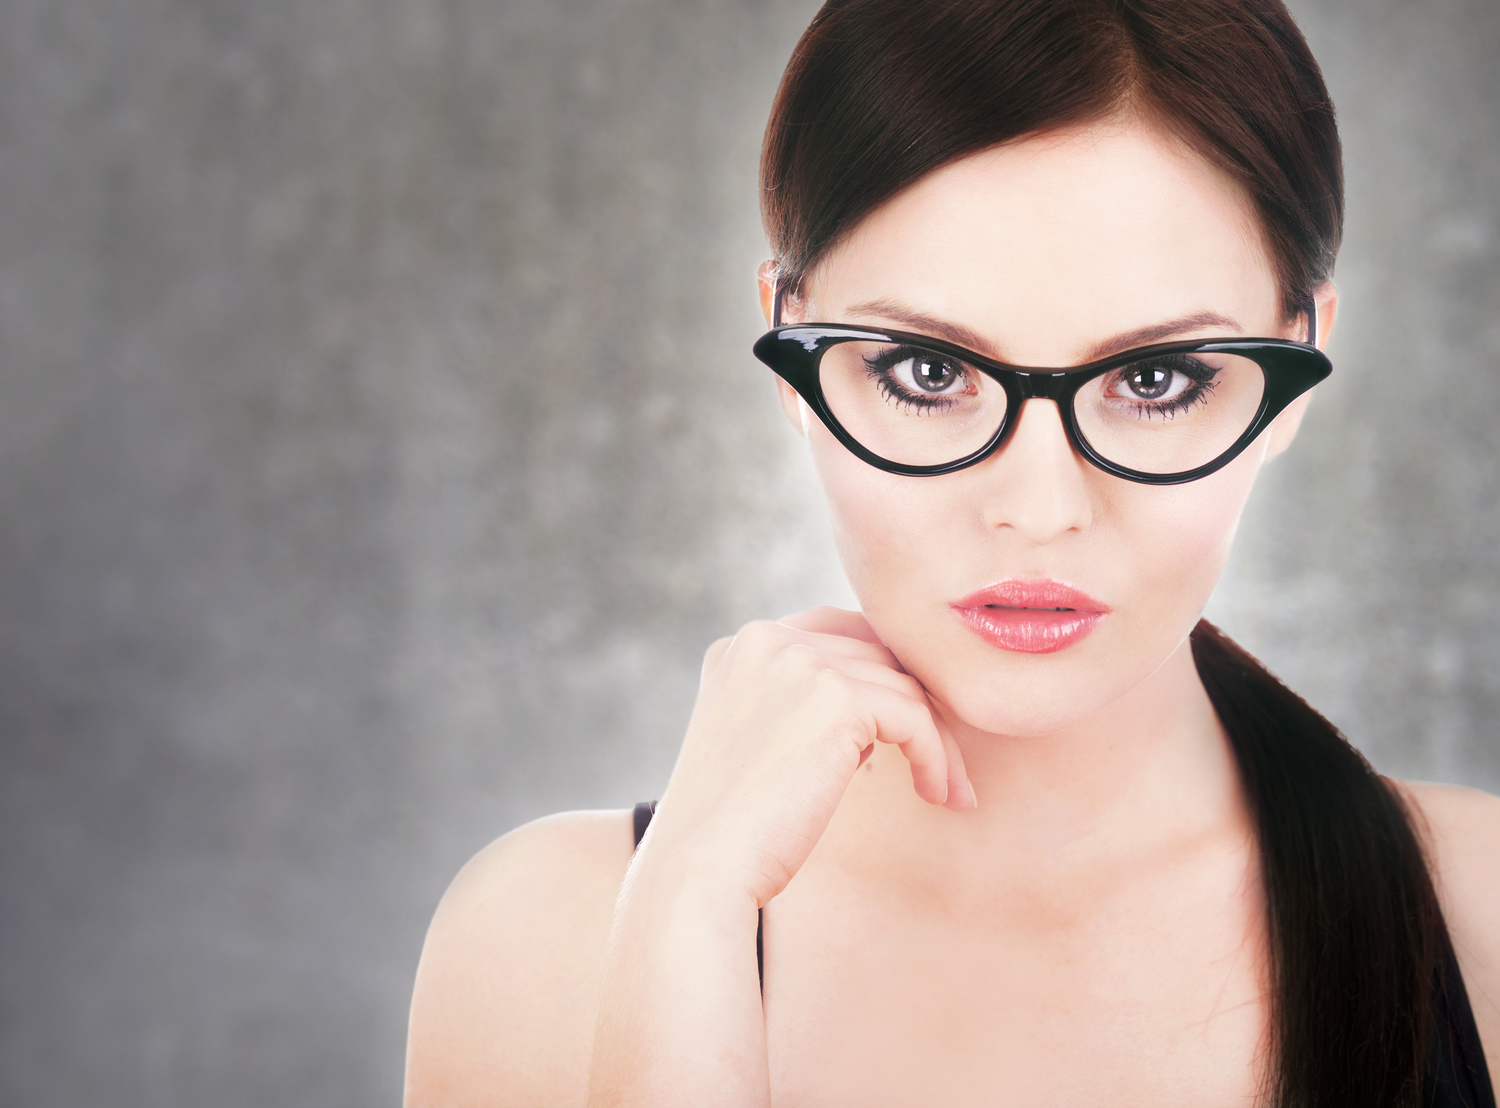 870b6b4f4e9 shutterstock 115710727.jpg. Improve your vision   style with high quality  eyeglasses ...